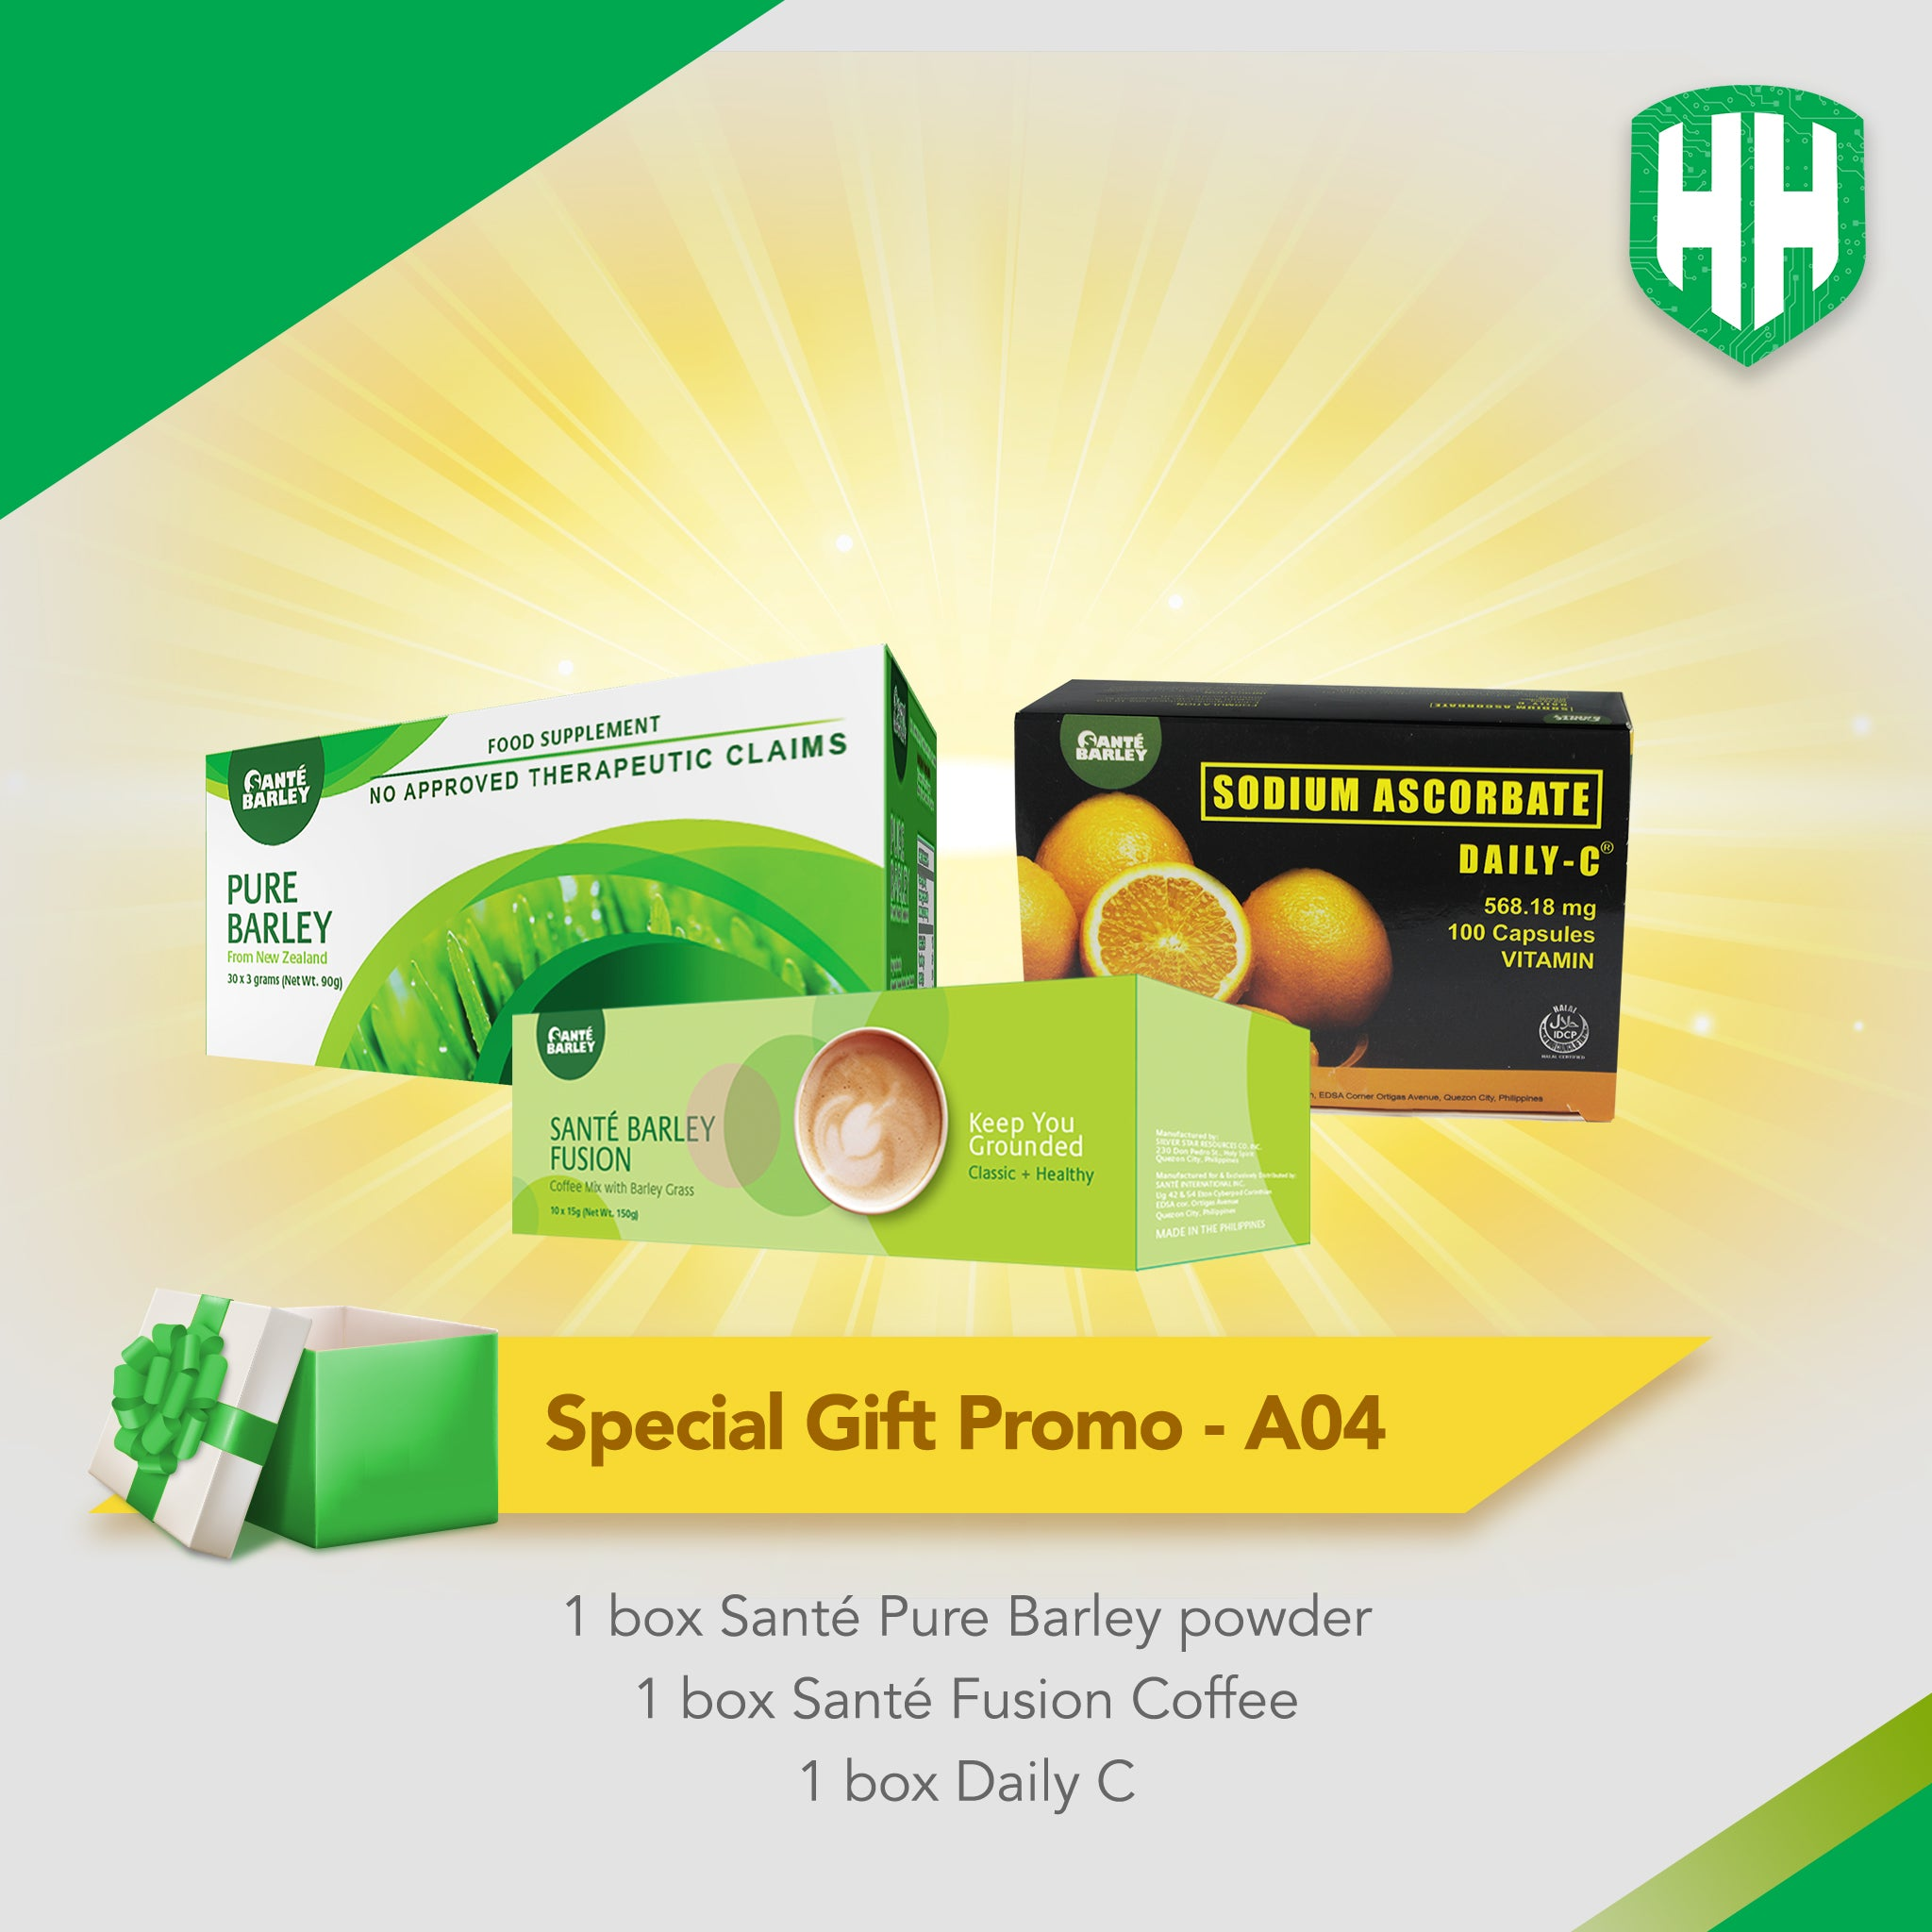 Special Gift Promo A04